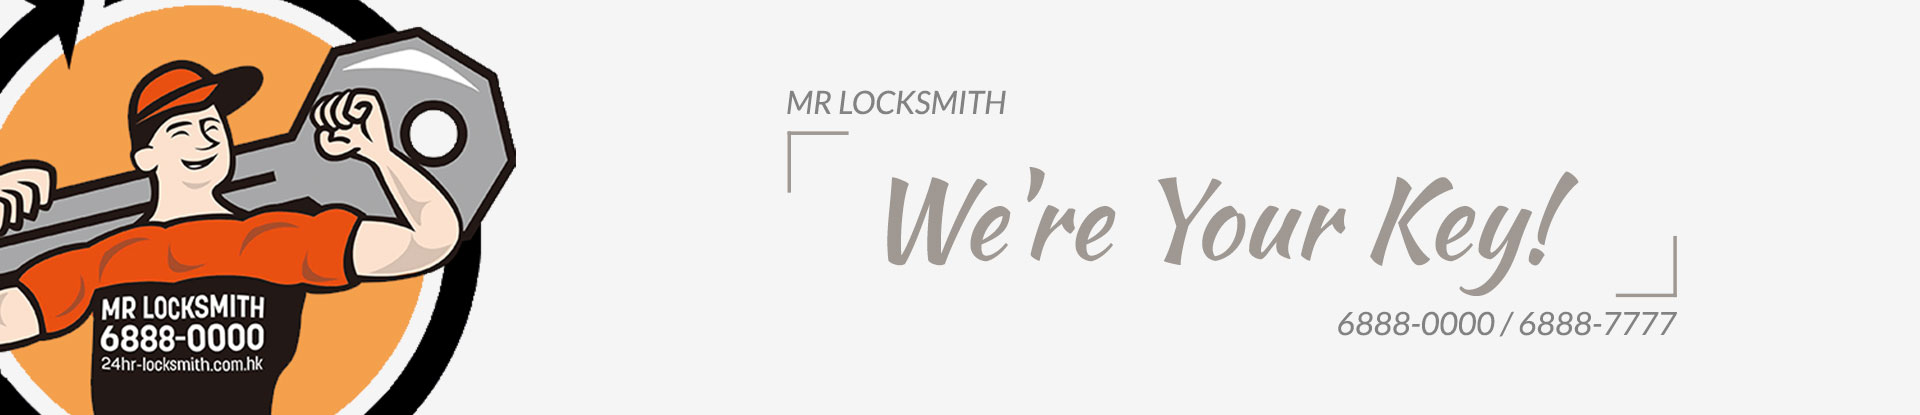 Western District Locksmith -Locksmith in Western District